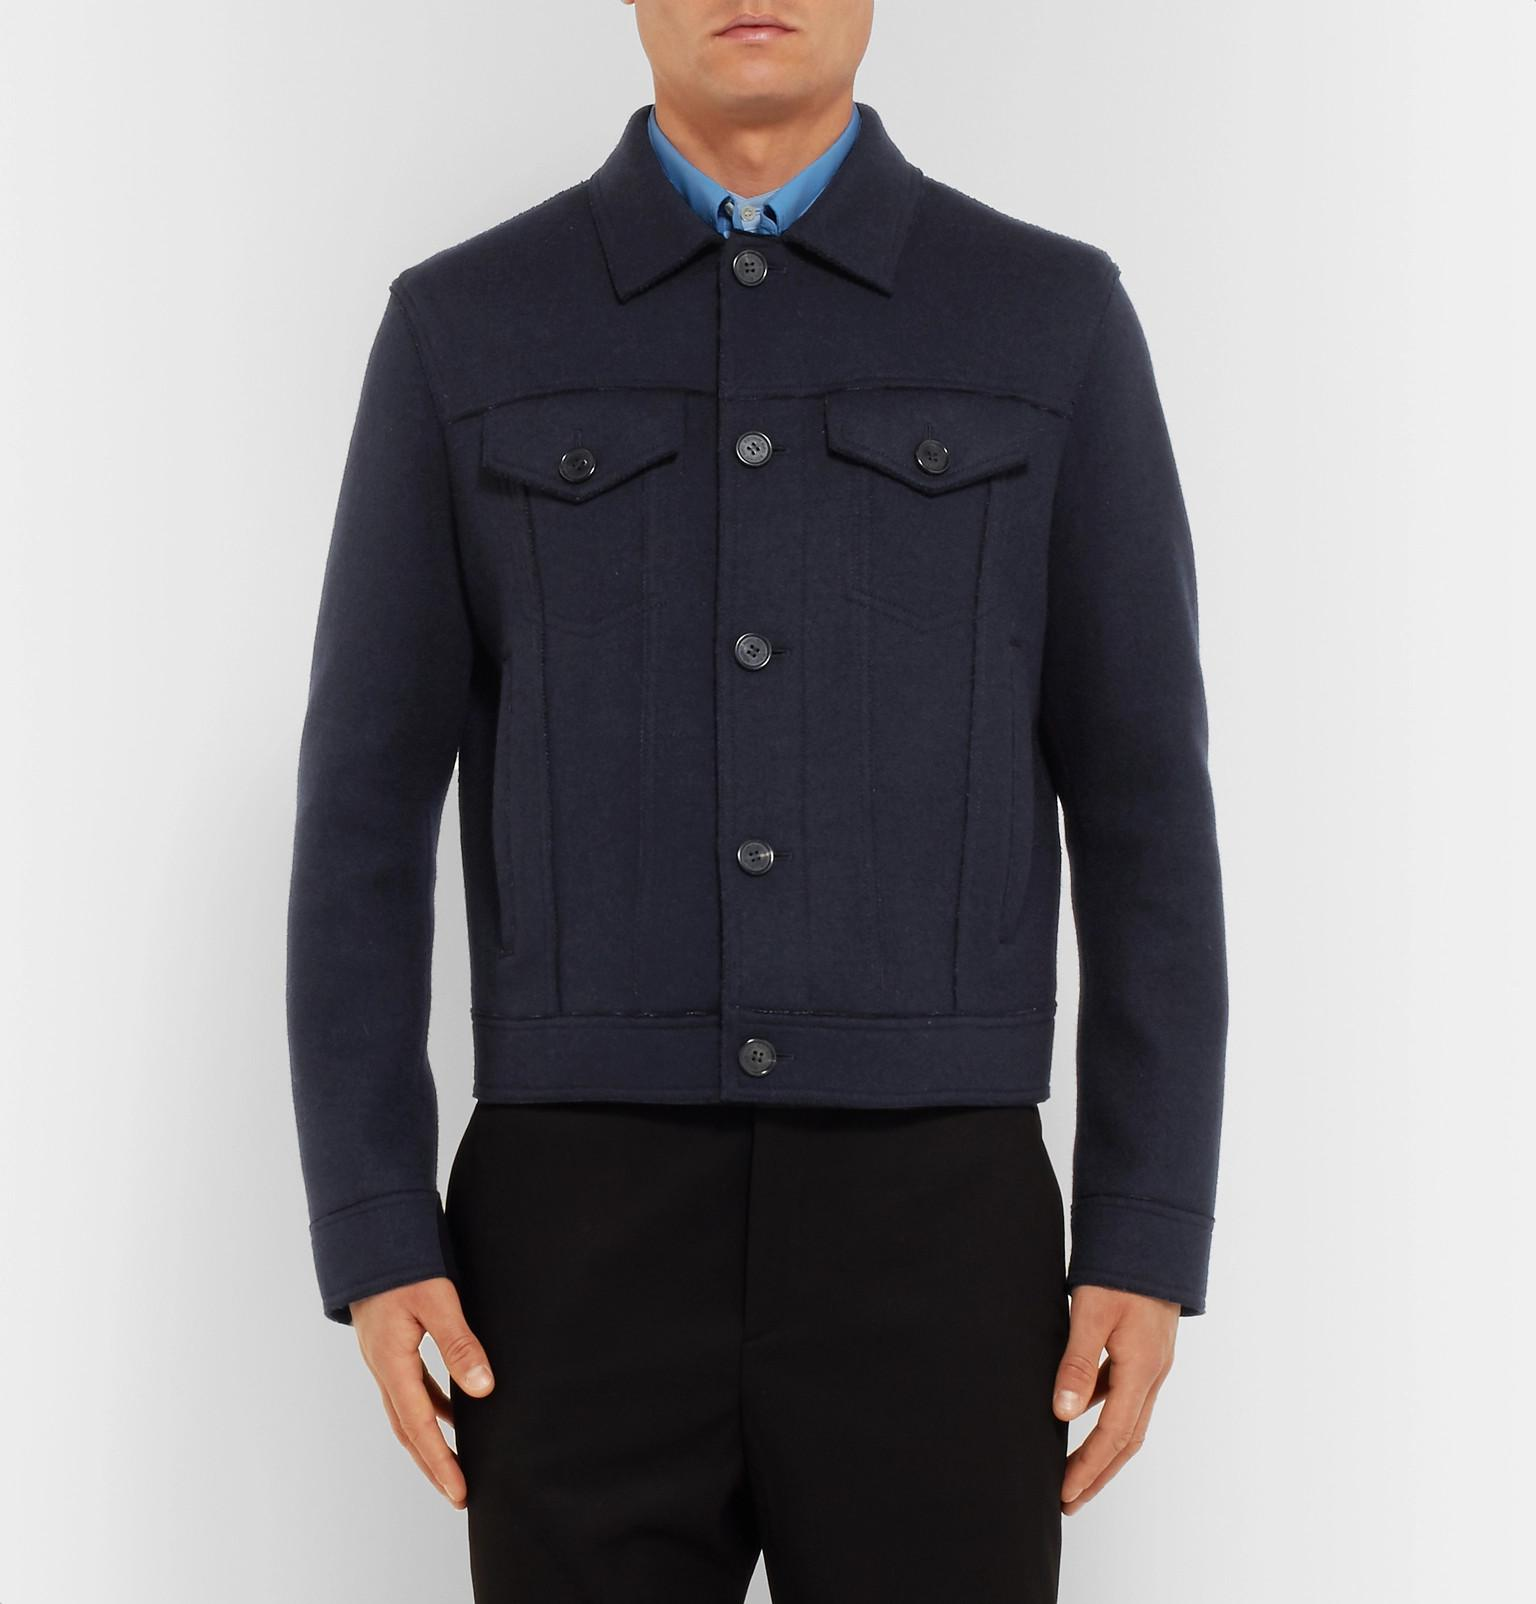 a87bbfa7ed39 neil-barrett-navy-Wool-blend-Trucker-Jacket.jpeg